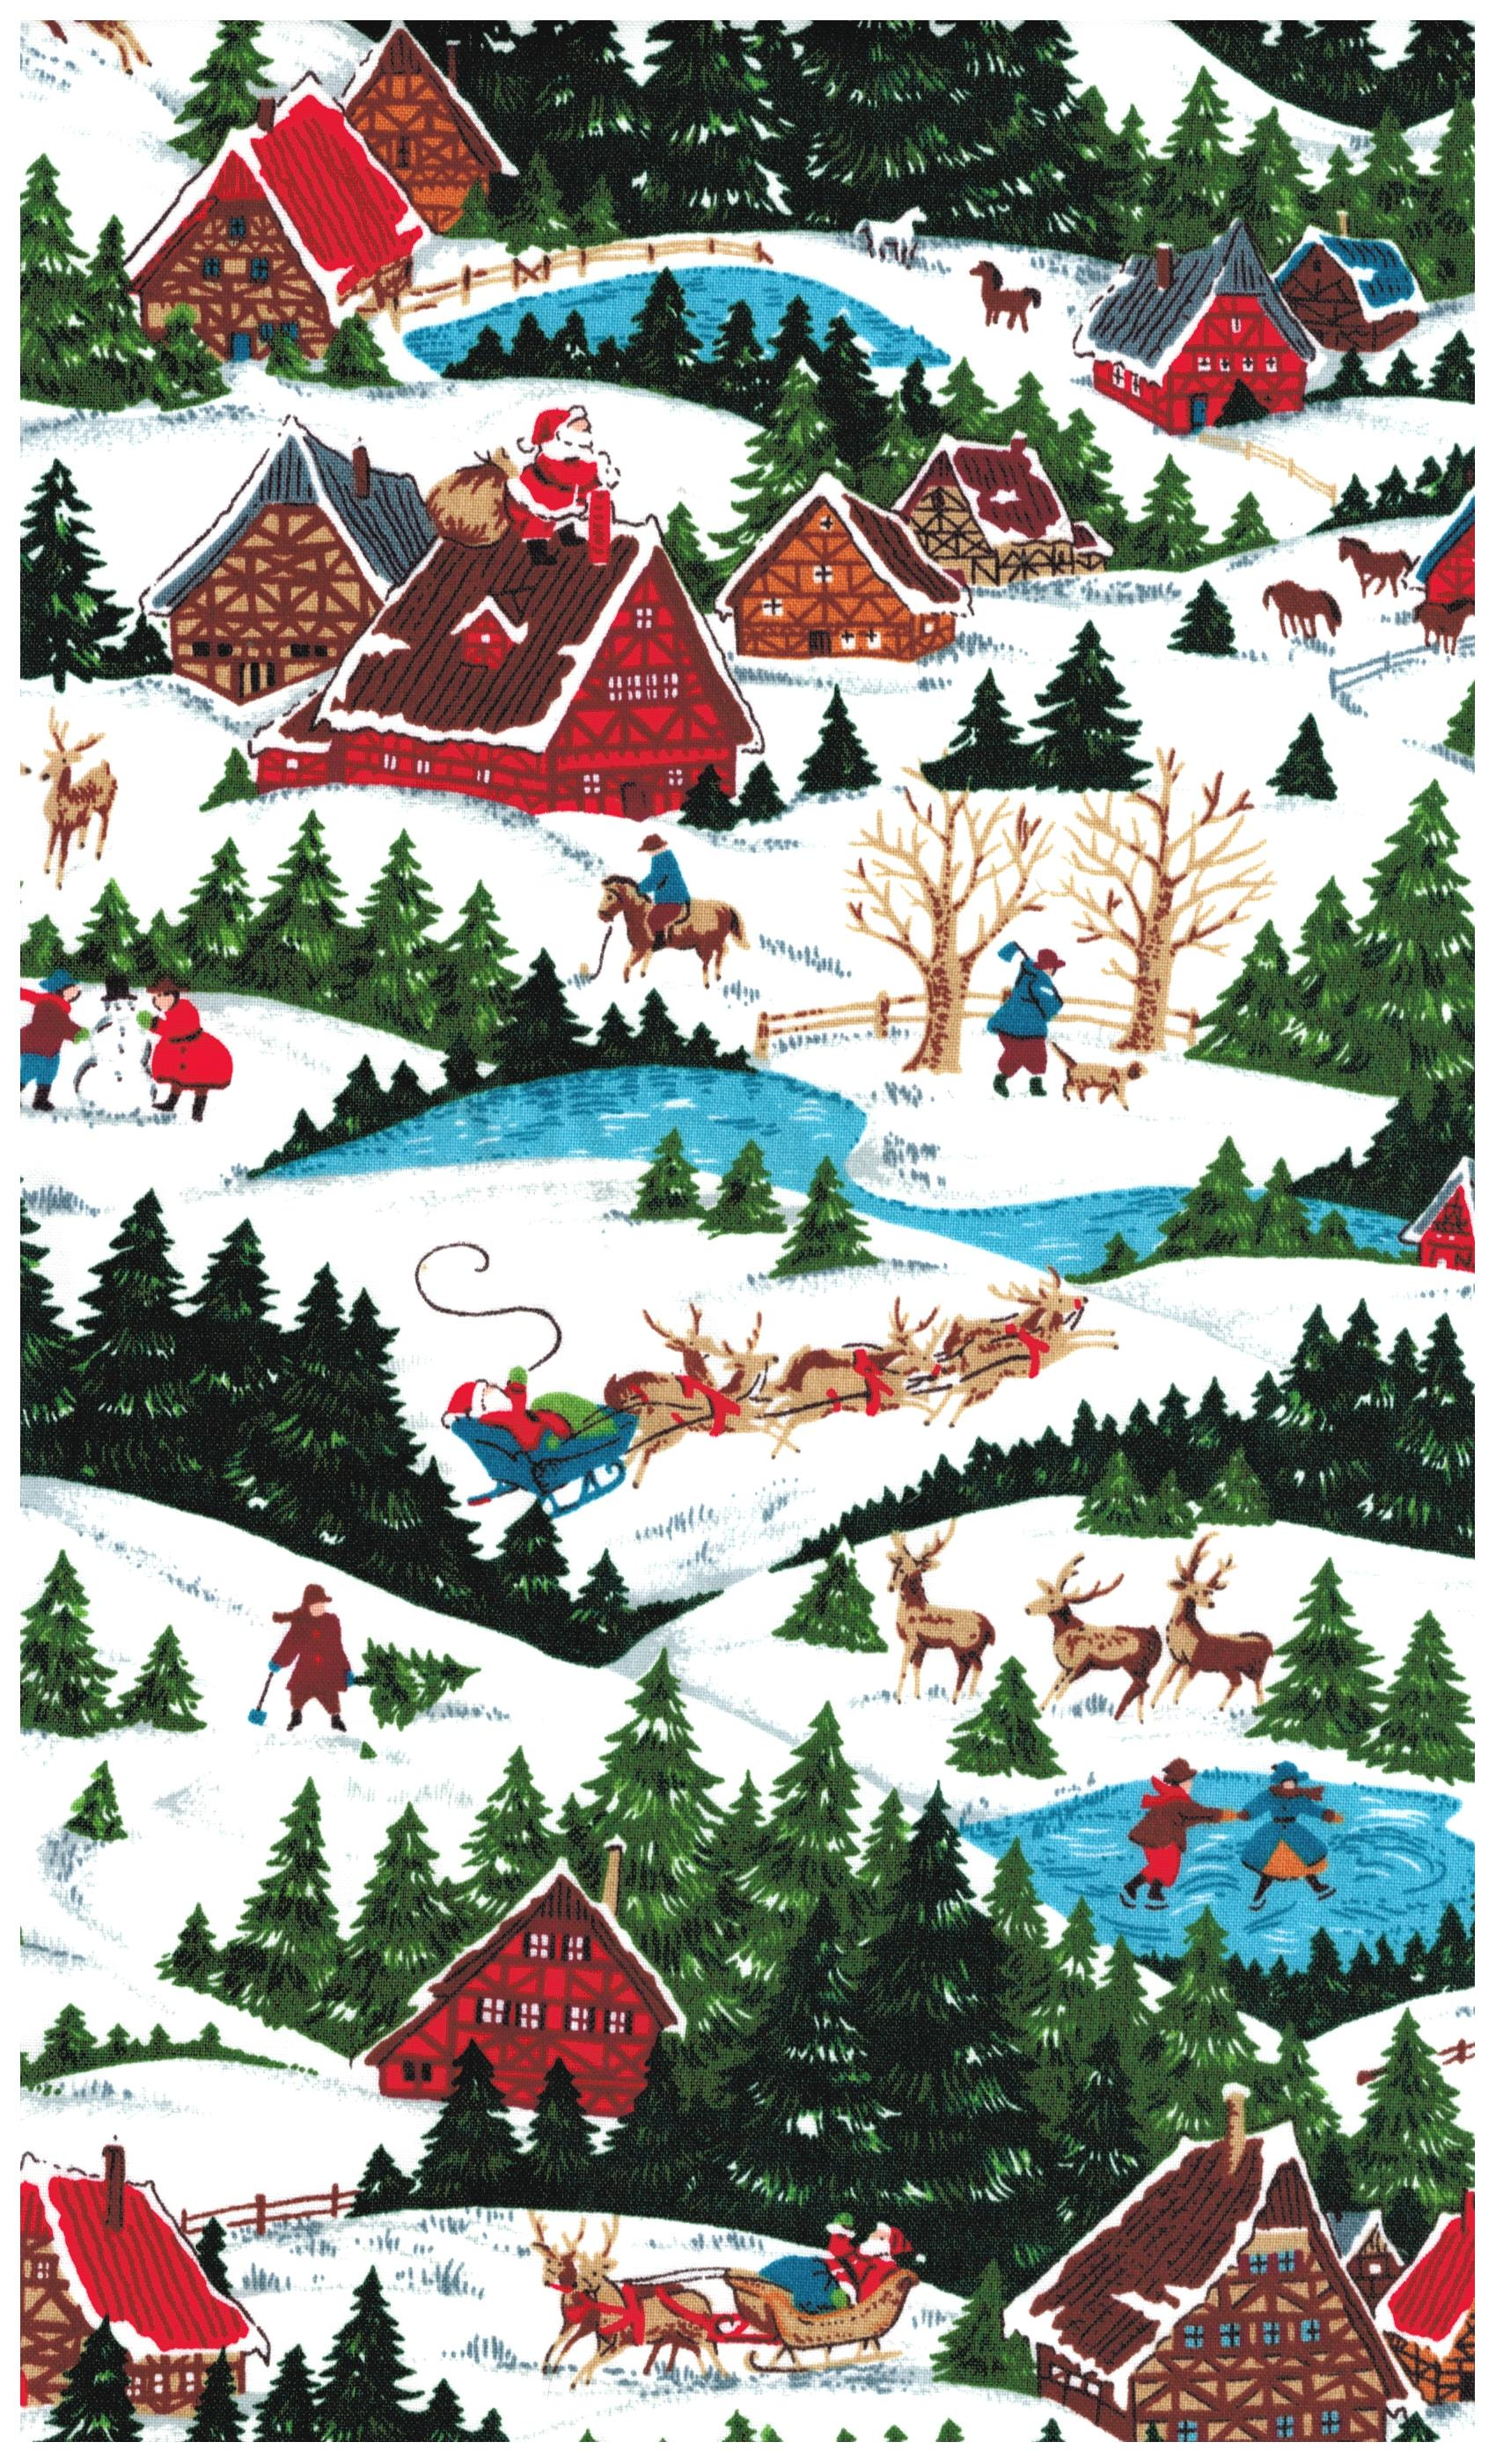 Buy fabric for Christmas sewing and craft projects online at JOANN! Browse a variety of festive Christmas fabric designs, colors and styles!